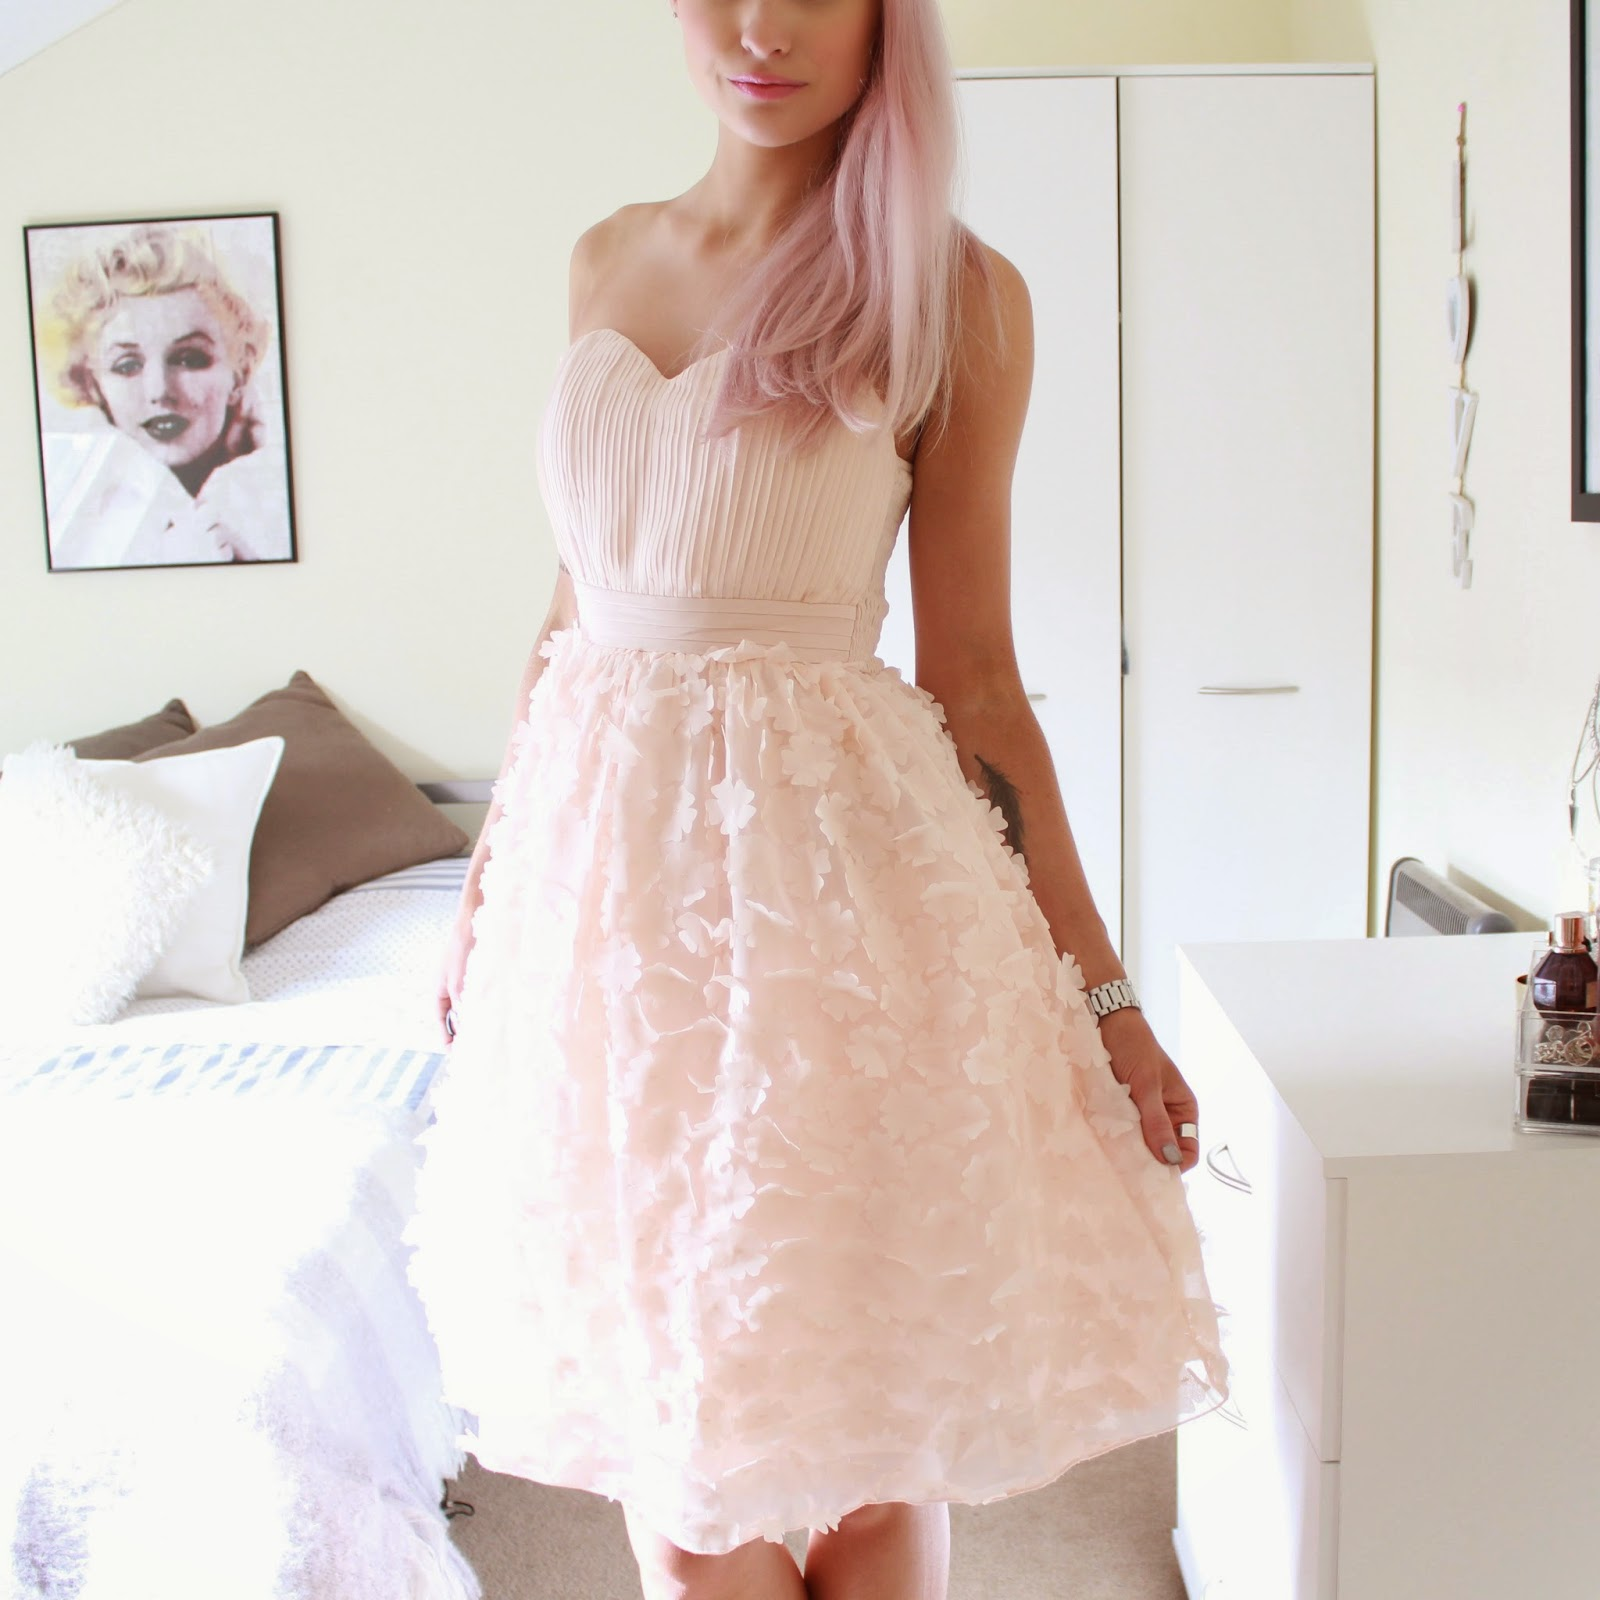 The Prettiest Dress in the World - Inthefrow